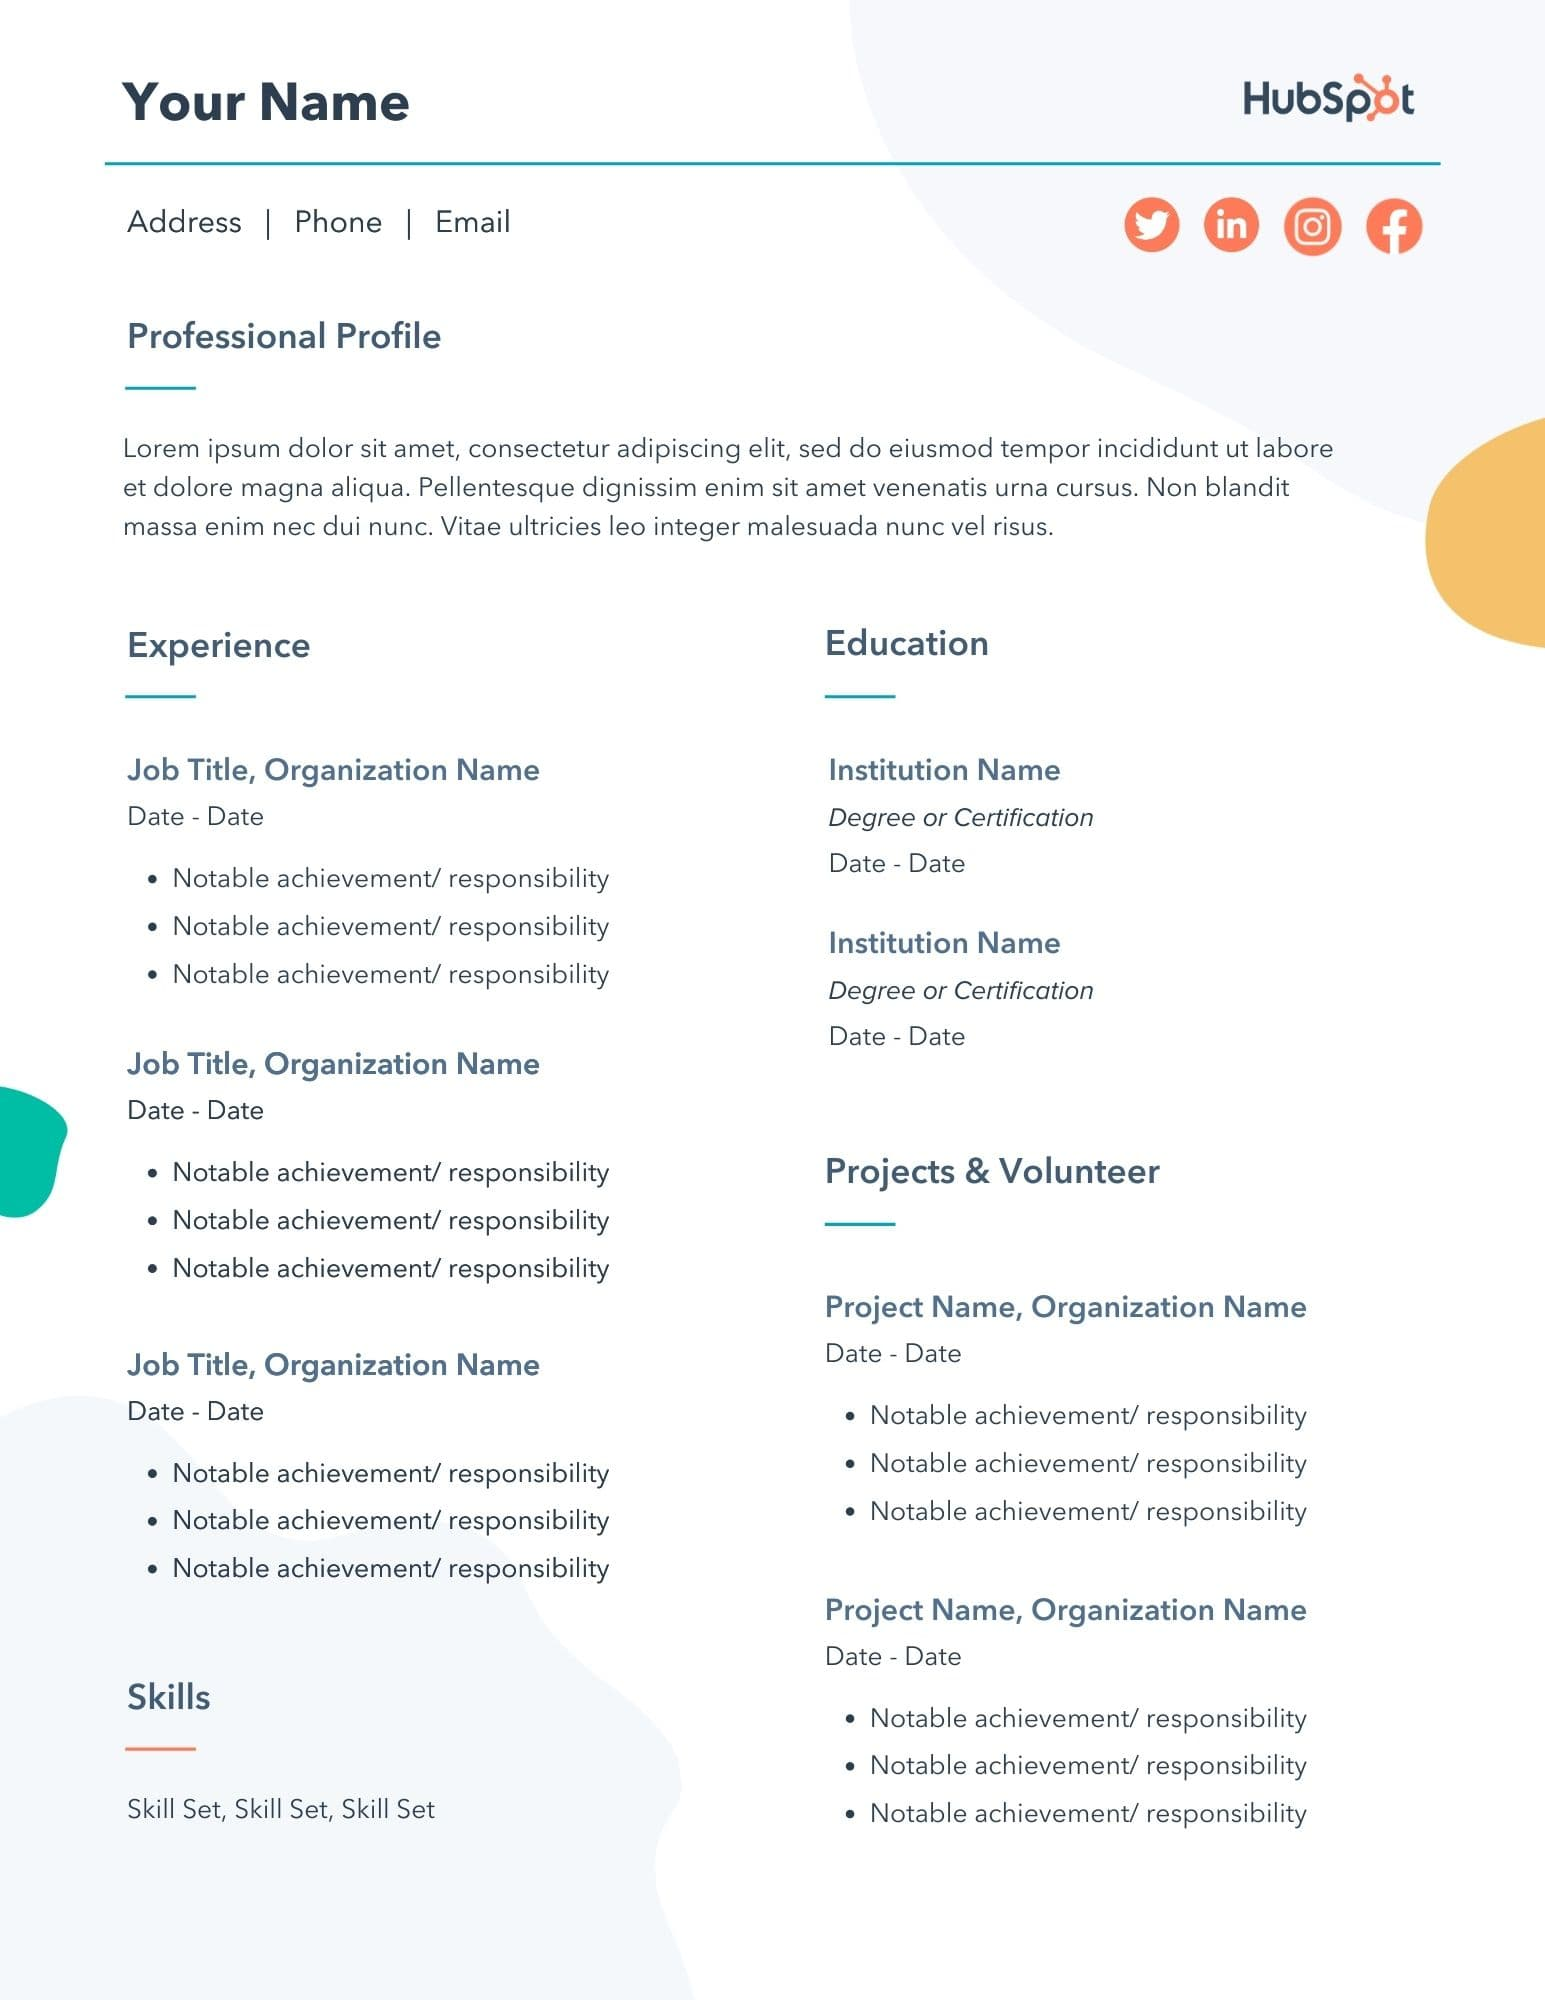 free resume templates for microsoft word to make your own template formal letter sample Resume Resume Templates Download Your Free Resume Template